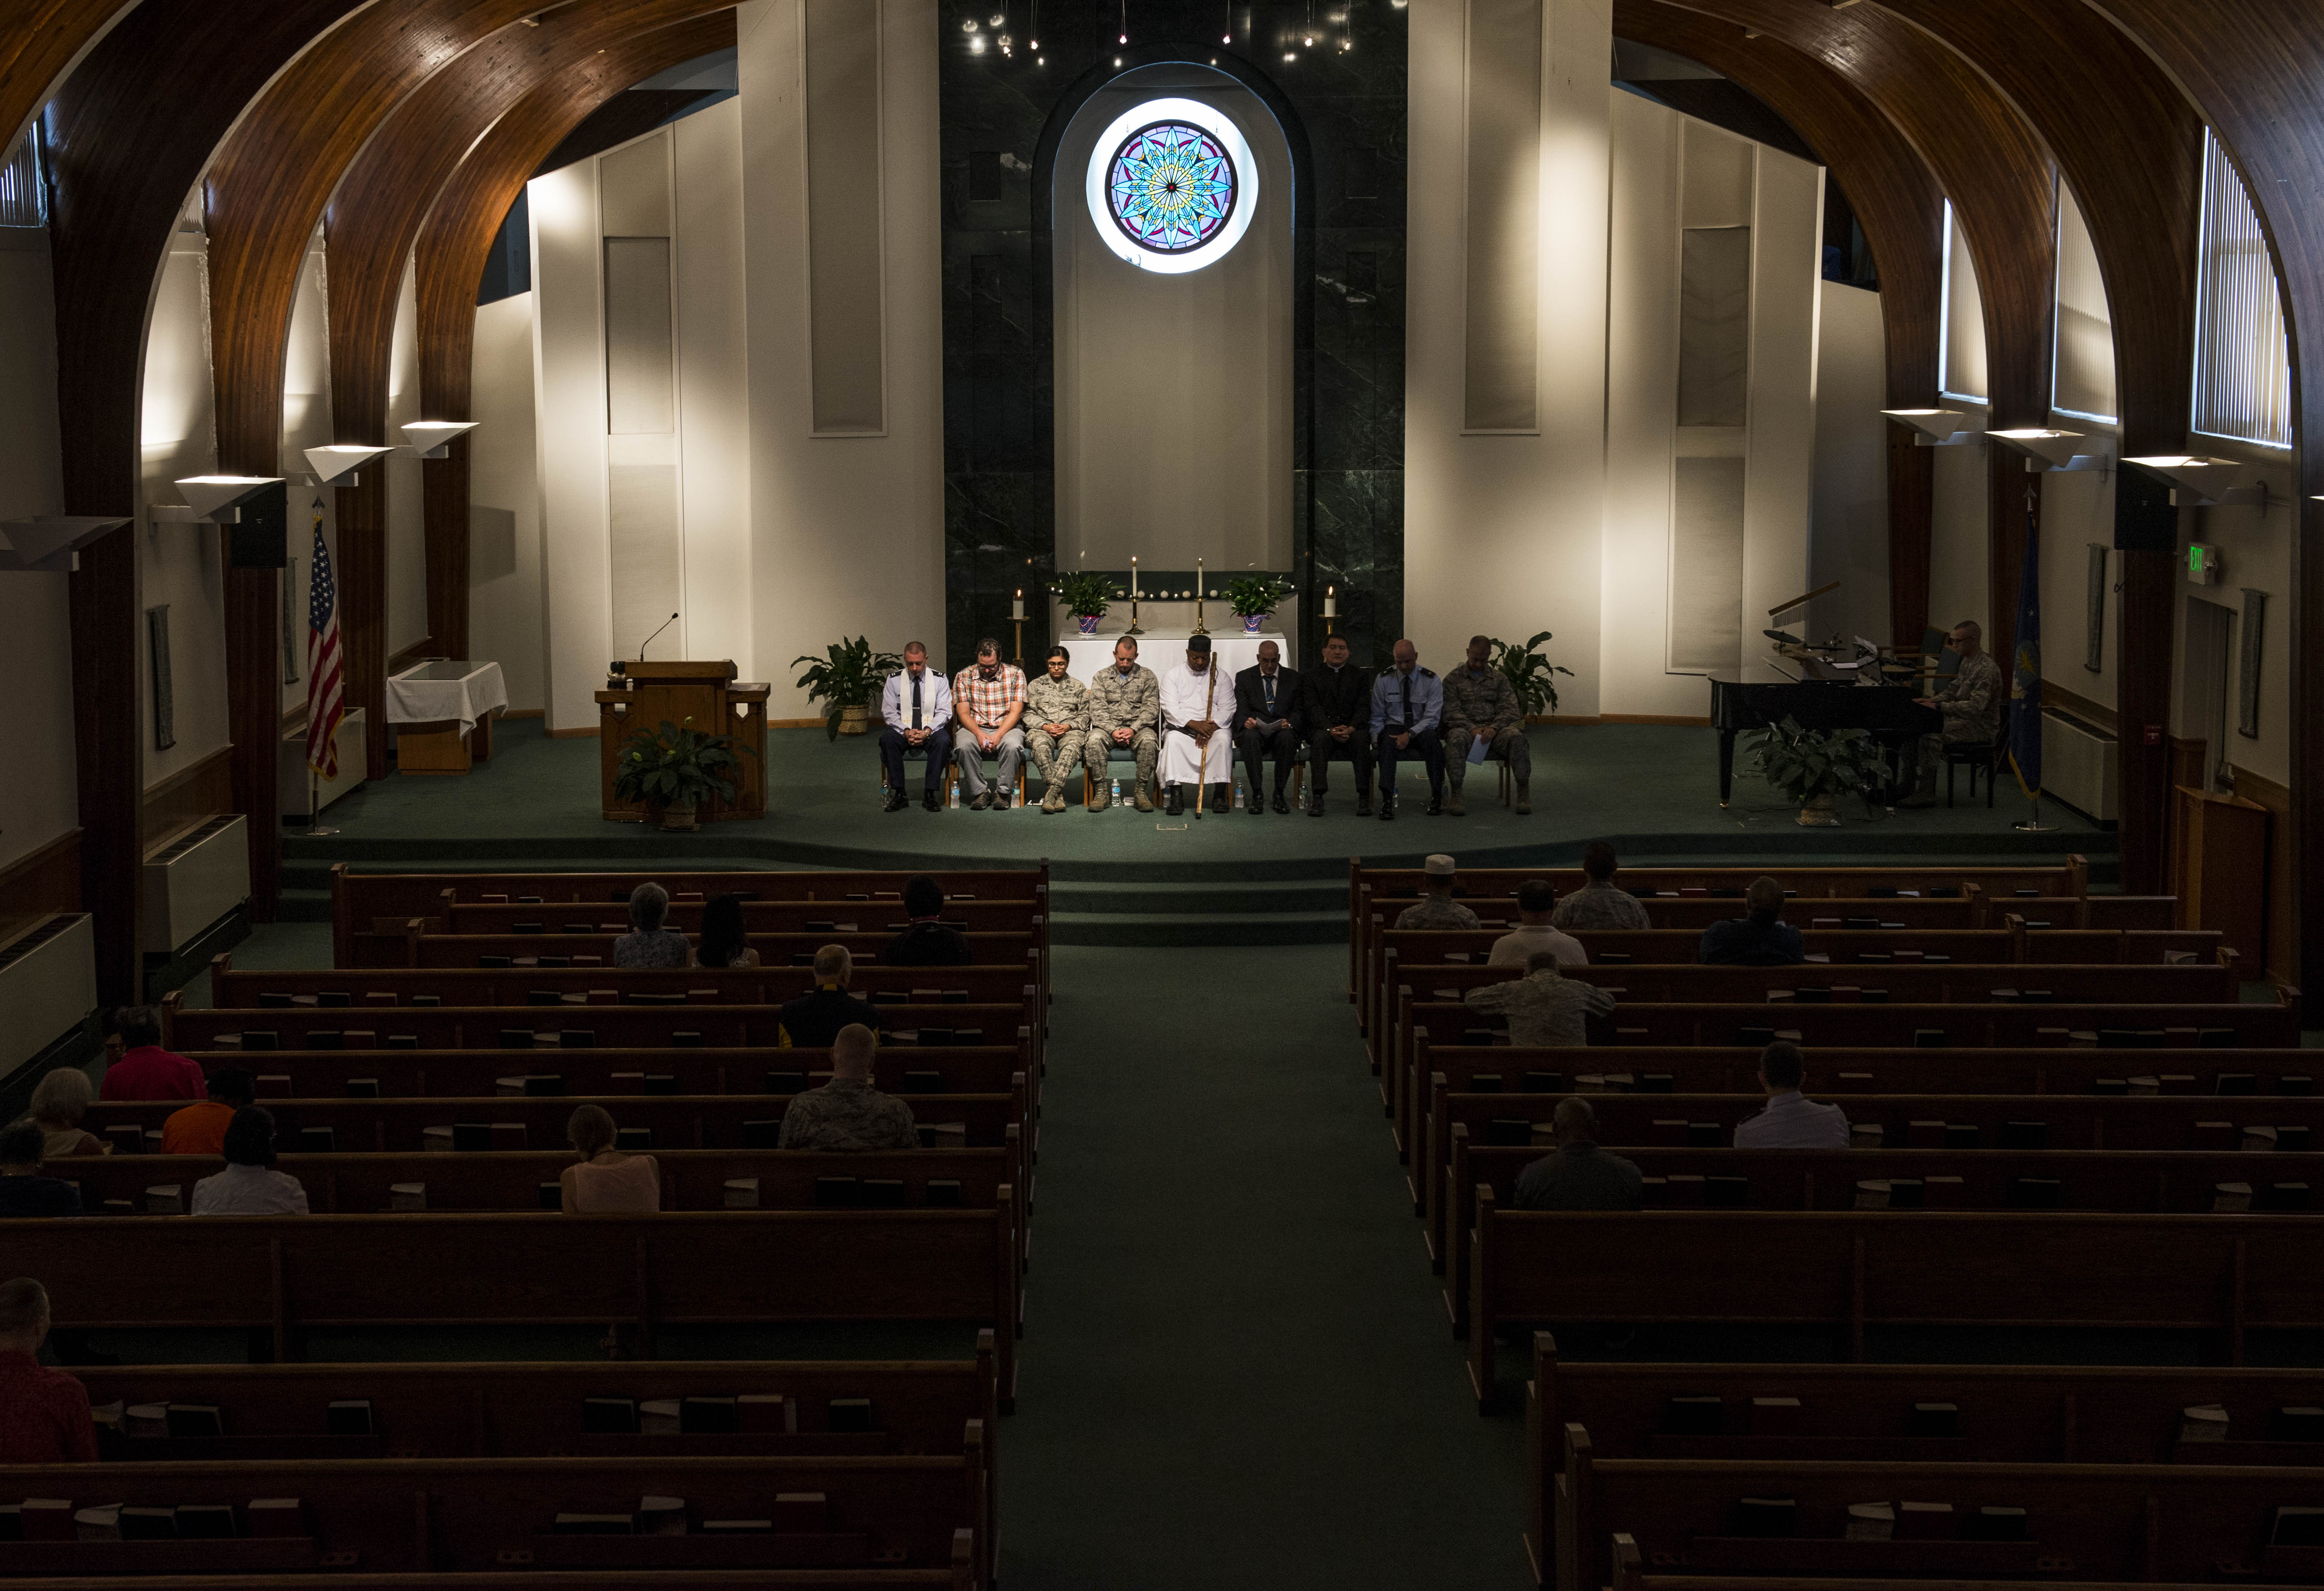 sharps chapel hindu personals This may contain online profiles, dating websites, forgotten social media accounts, and other potentially embarrassing profiles this may also contain additional contact information, giving you more ways to get in touch.